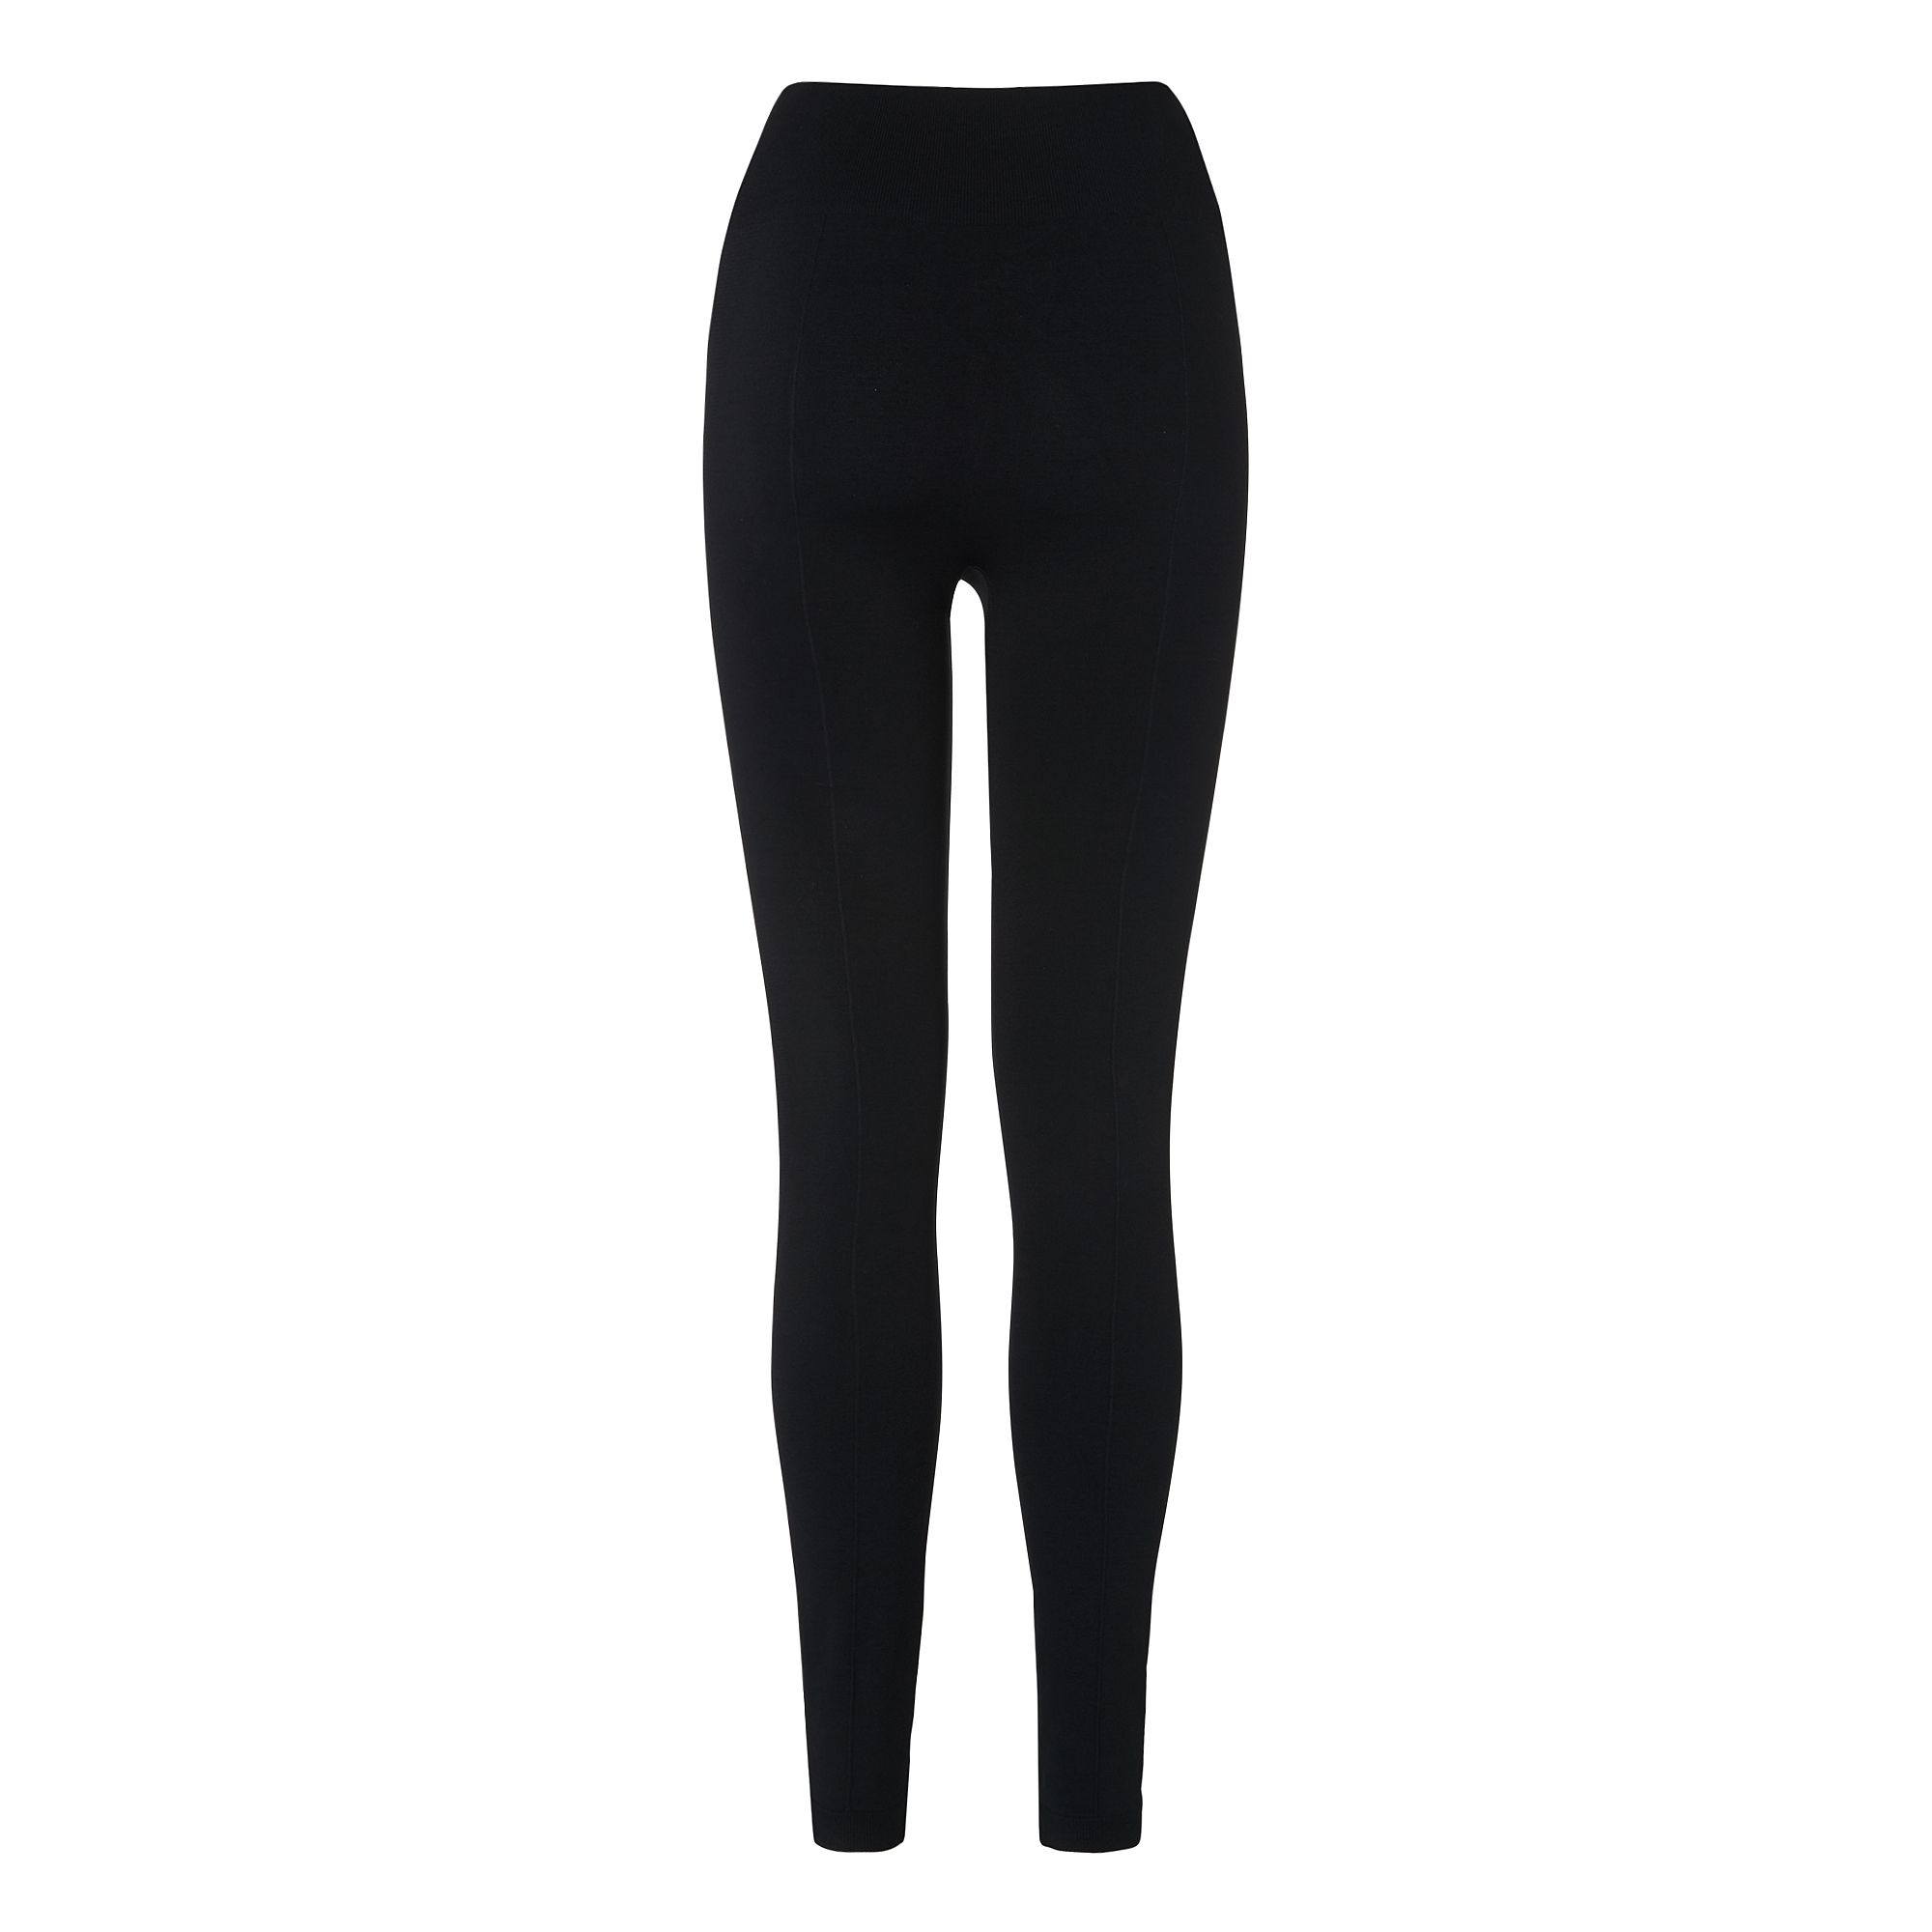 L.K. Bennett Flo Knit Leggings, Black